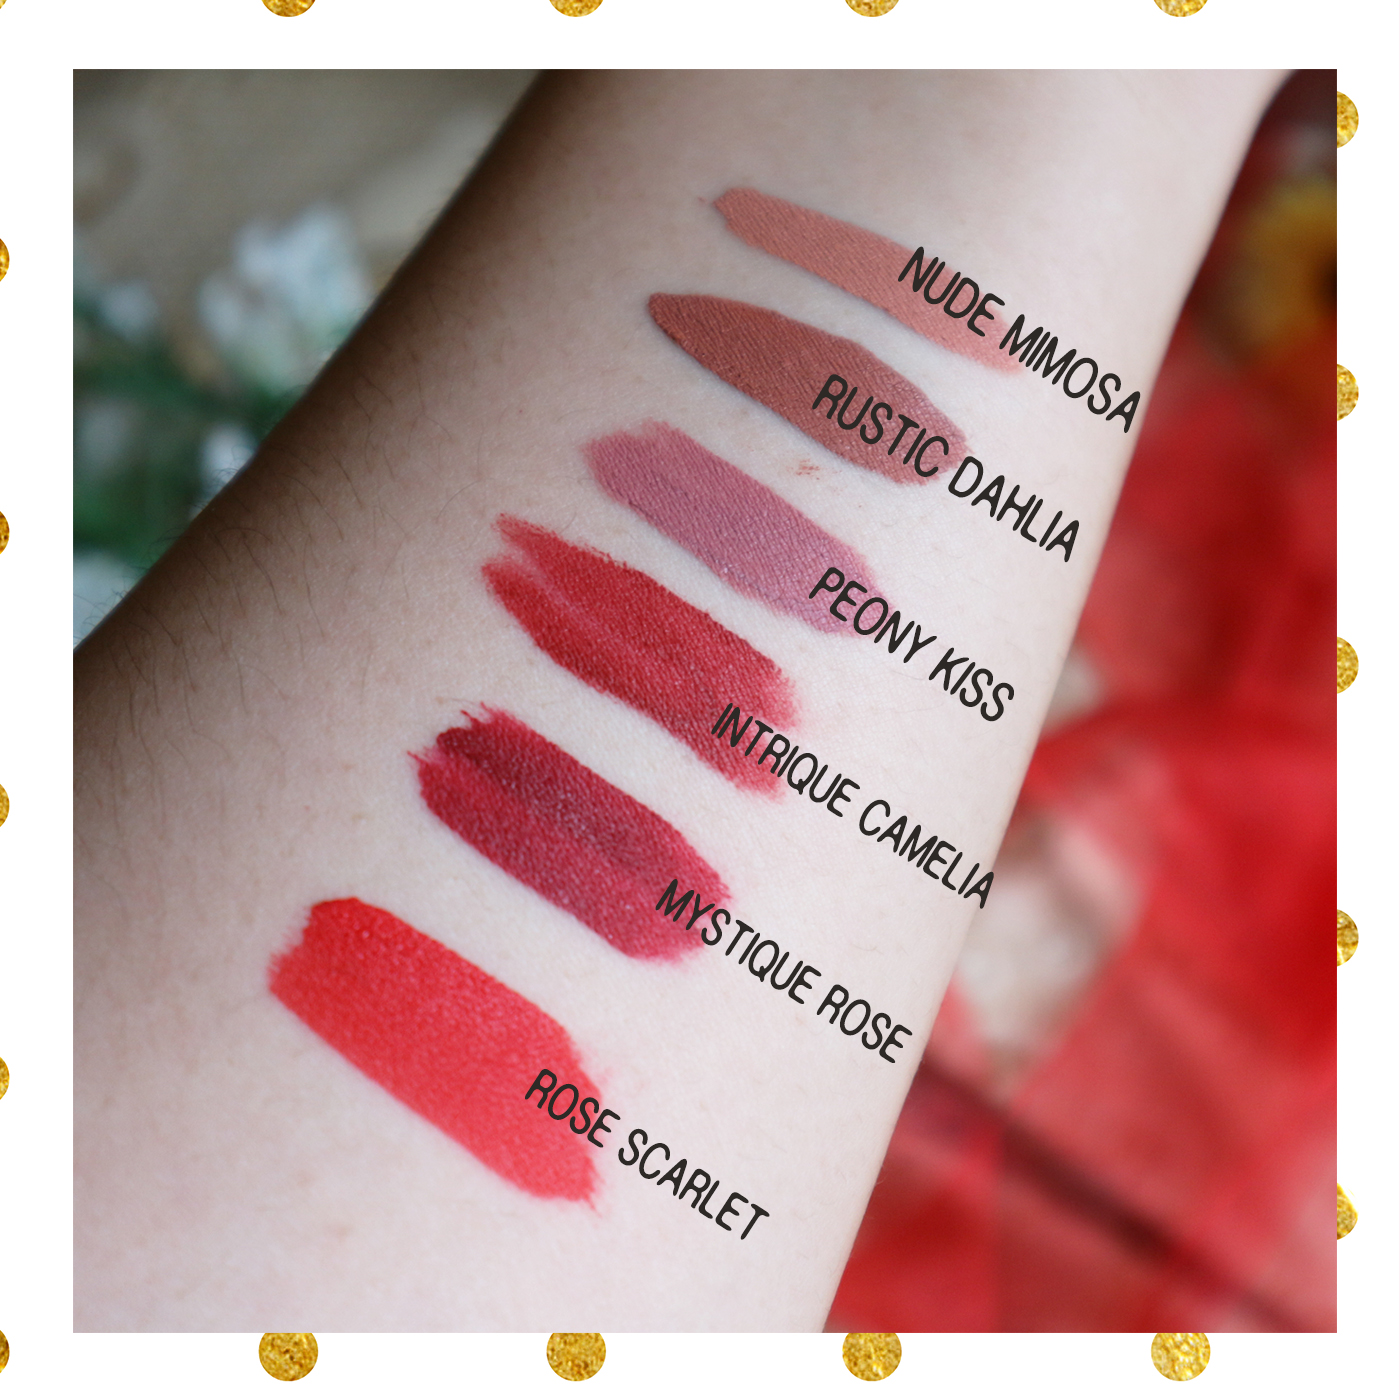 rubiena lip & cheek cream swatches & review